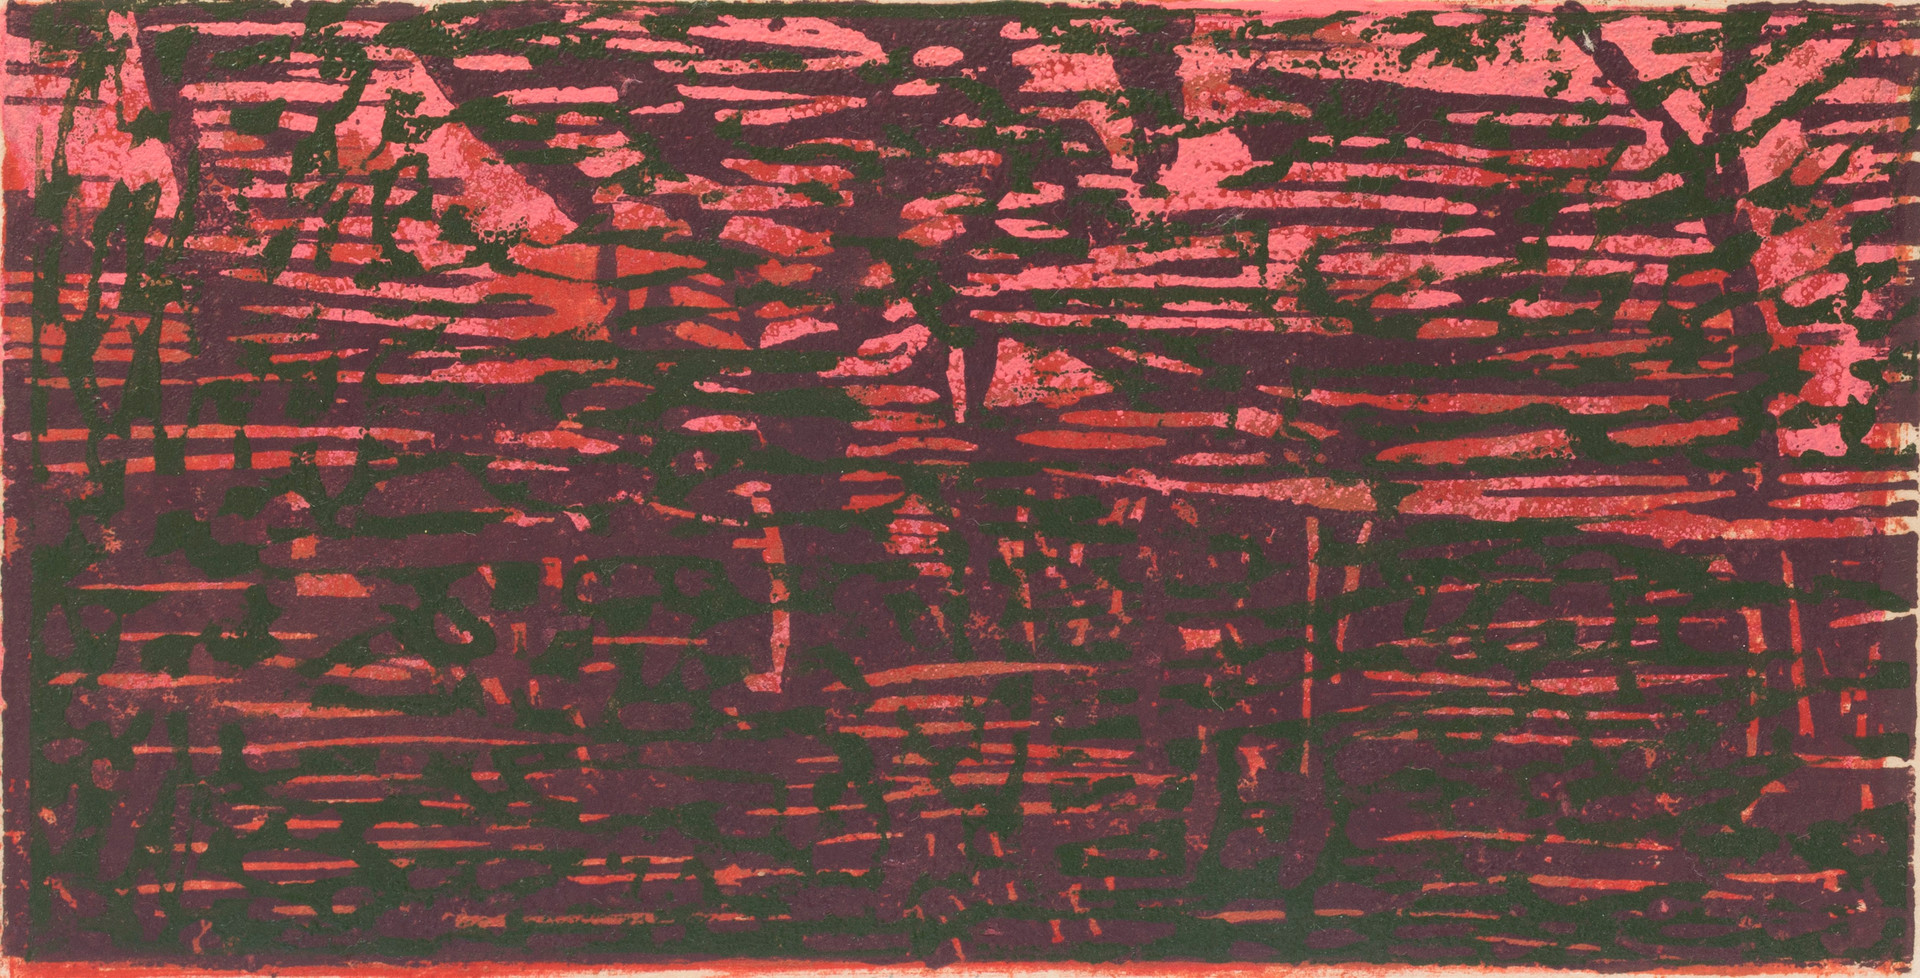 Untitled - red, pink, purple, and black texture (edition 8-10)